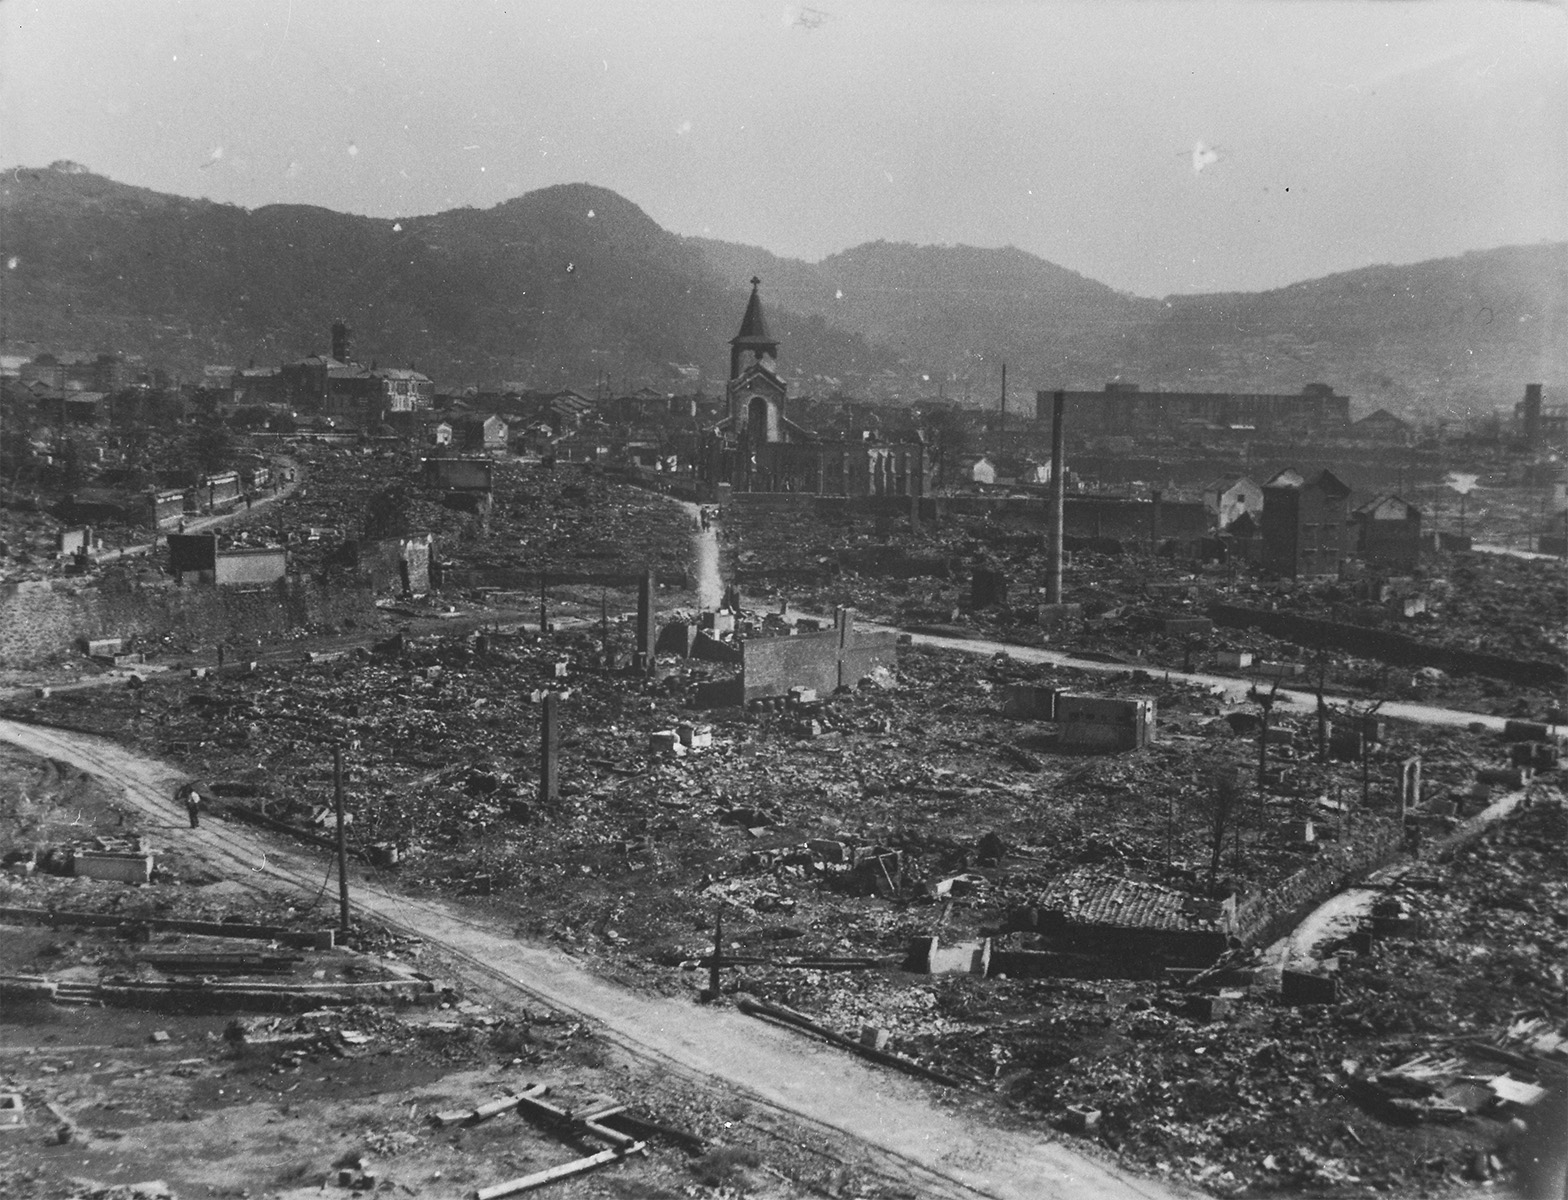 View from NHK Looking toward the Urban Area of Nagasaki ―Nishinaka-machi Catholic Church―